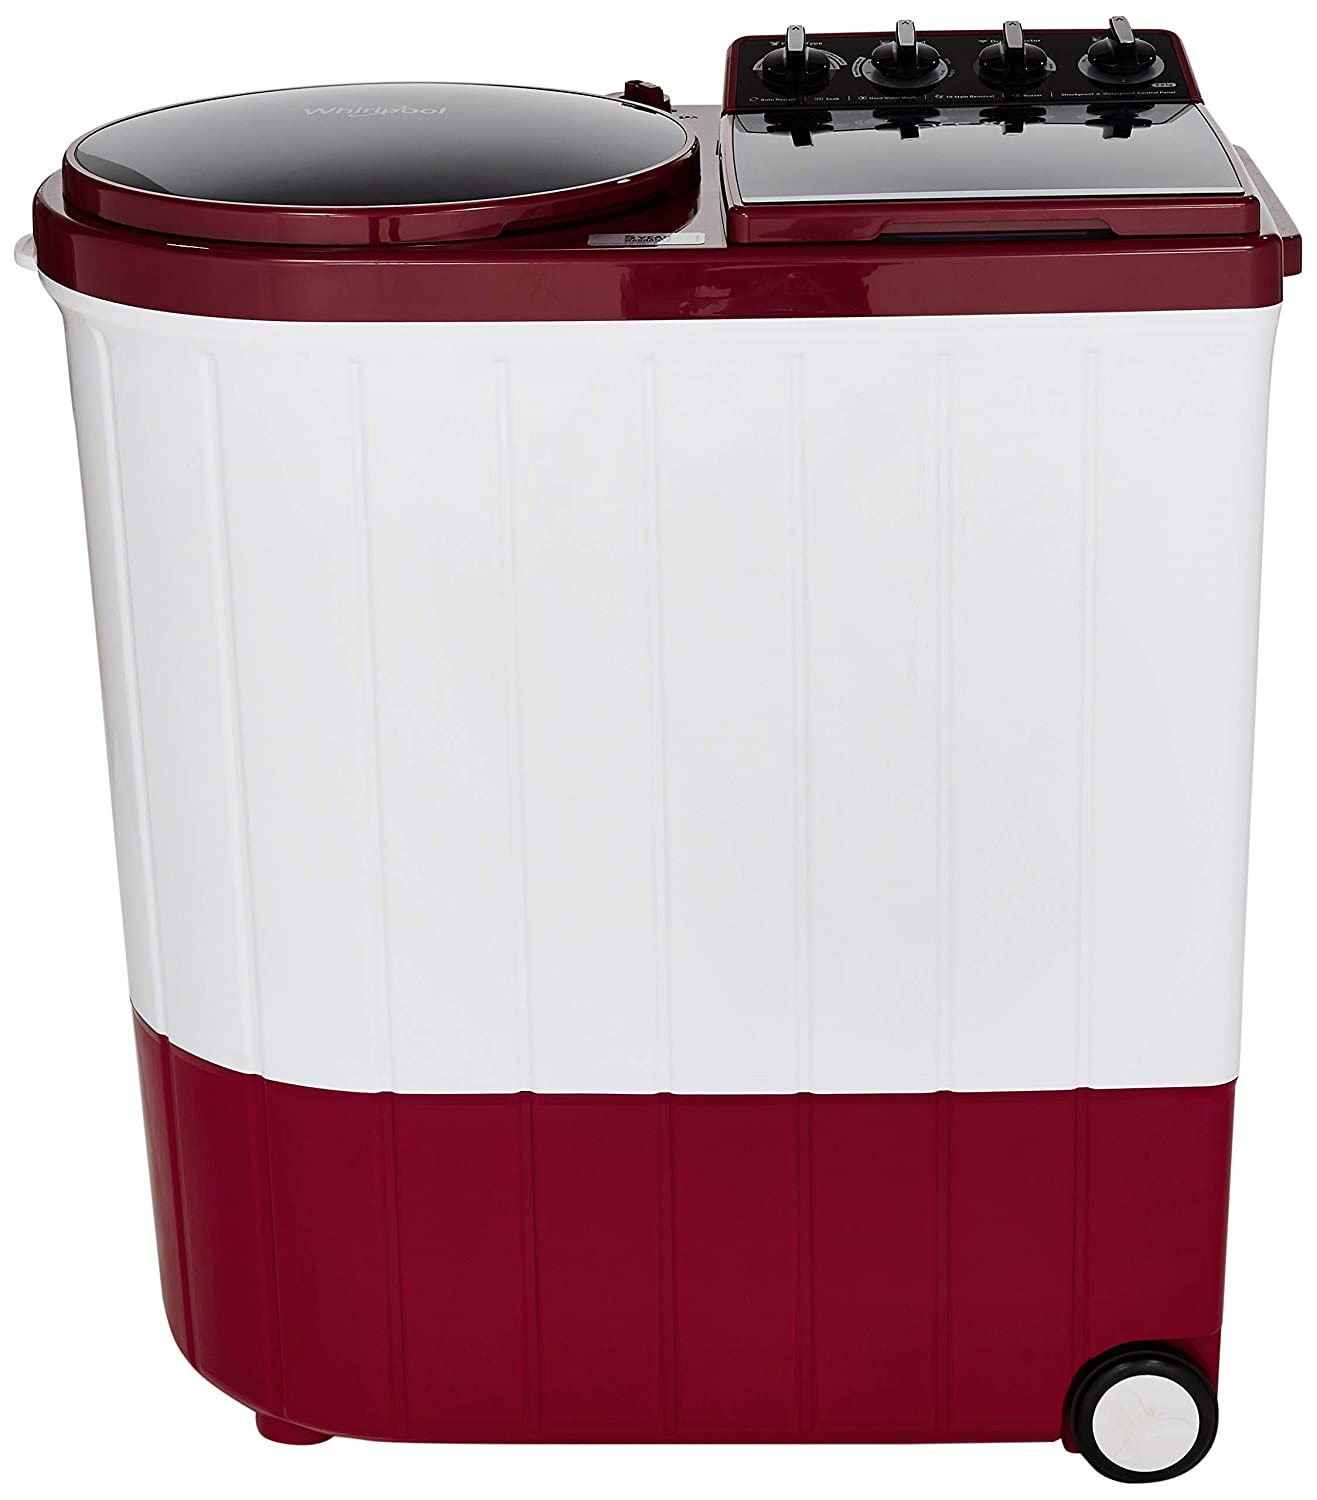 Whirlpool 5Kg Semi Automatic Washing Machine Coral Red Ace XL 9 Image